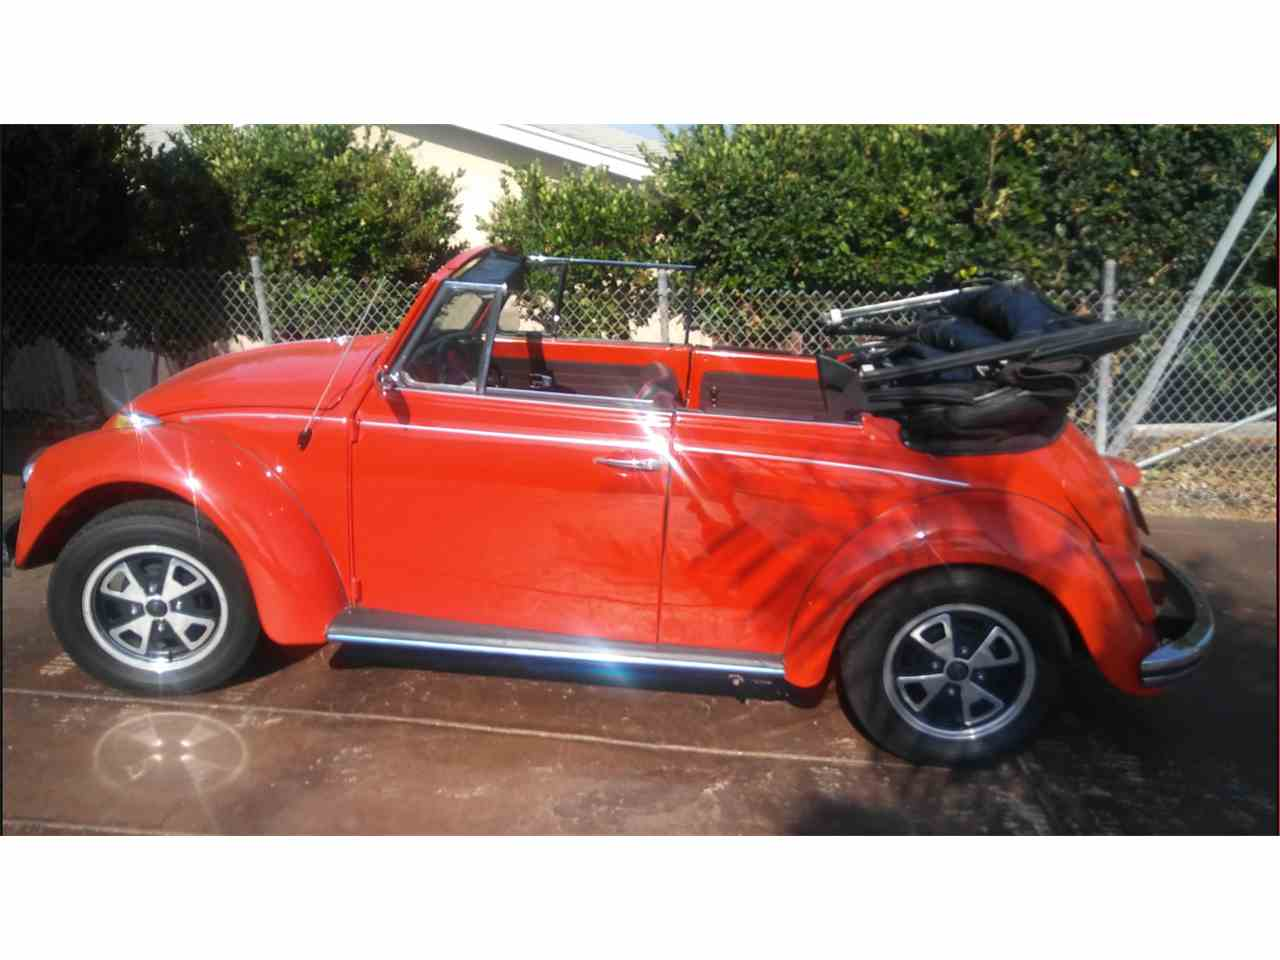 Large Picture of Classic 1968 Volkswagen Beetle - $8,999.00 Offered by a Private Seller - LN2C